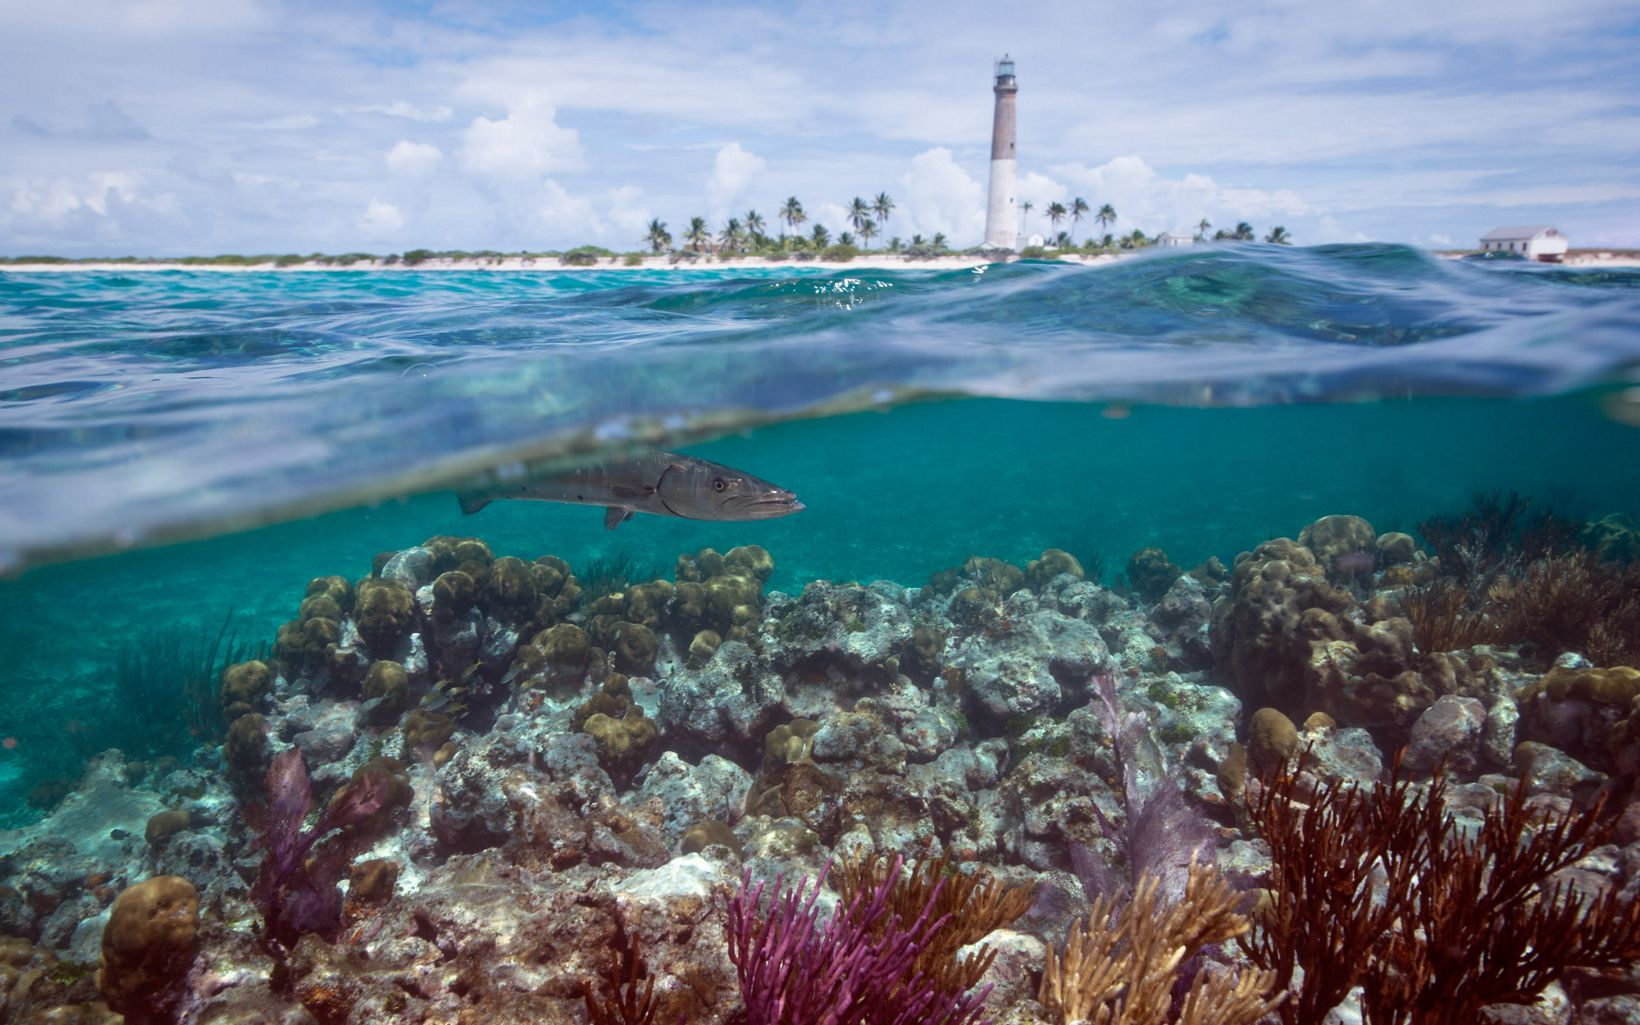 Barracuda swimming over reef with Loggerhead Key Lighthouse in the background, Loggerhead Key, Dry Tortugas National Park, Florida.